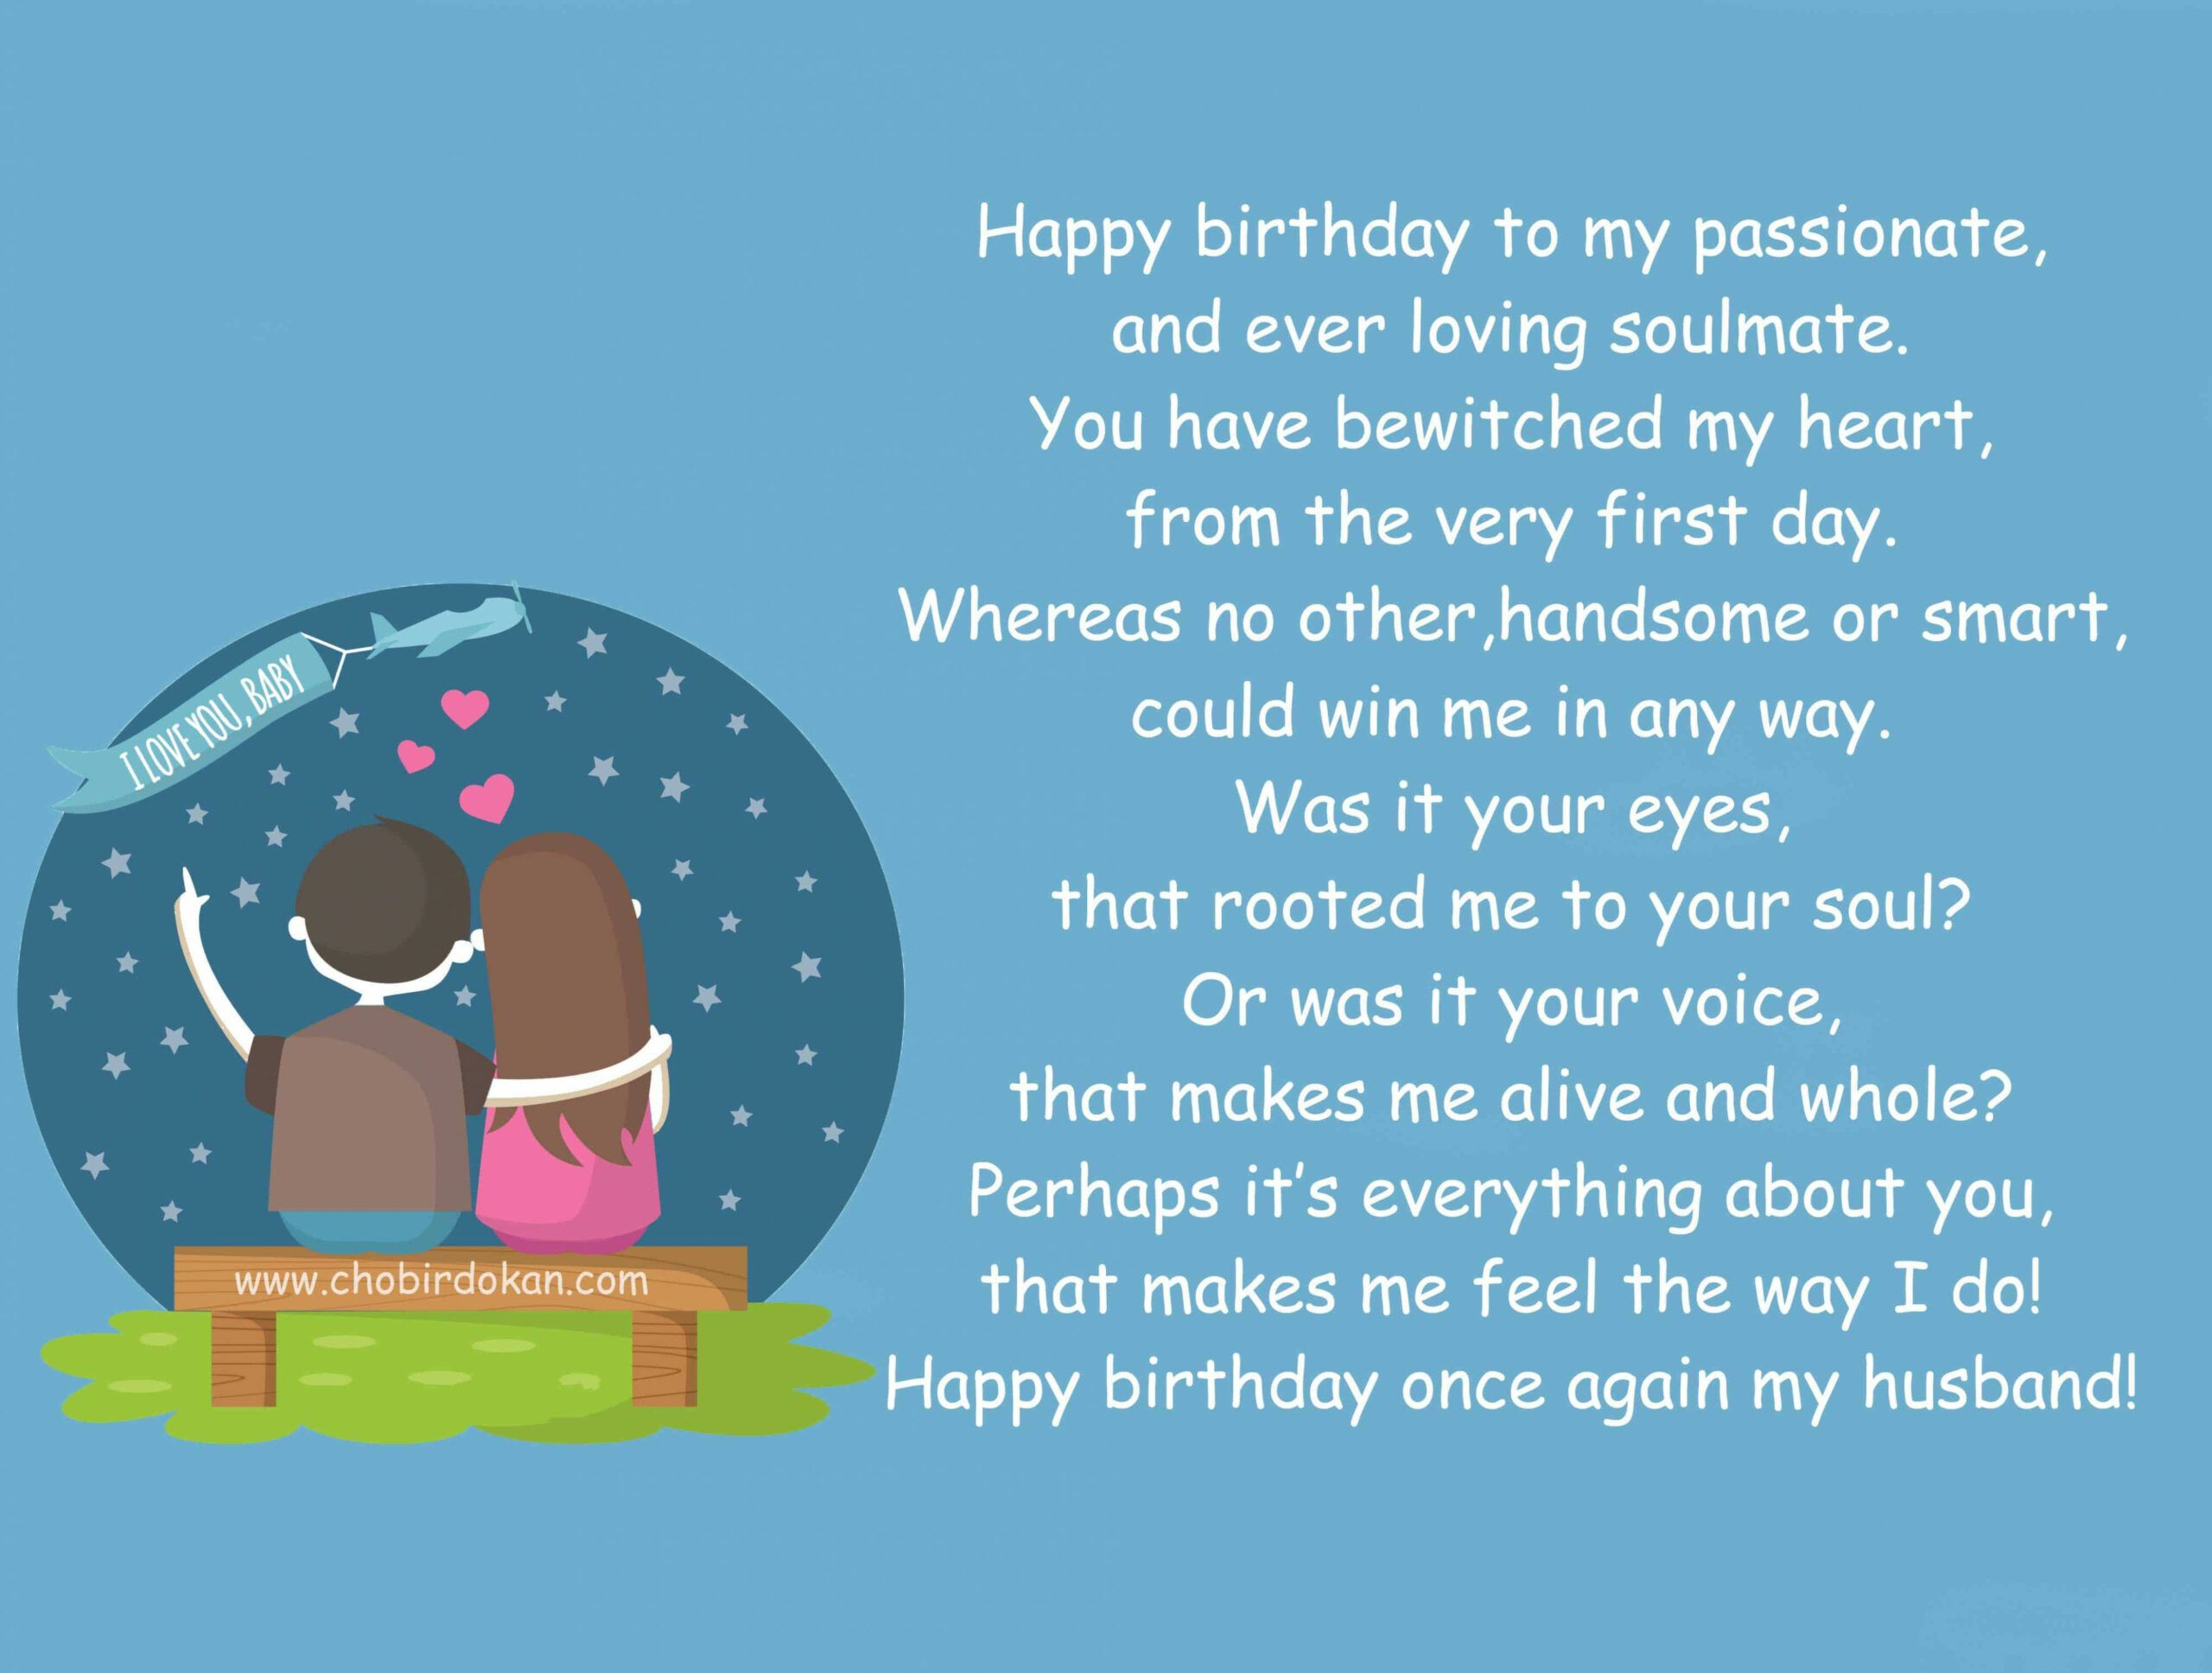 10 Awesome Happy Birthday Messages For Him Birthday Poems For Him Birthday Poems Birthday Wishes For Boyfriend